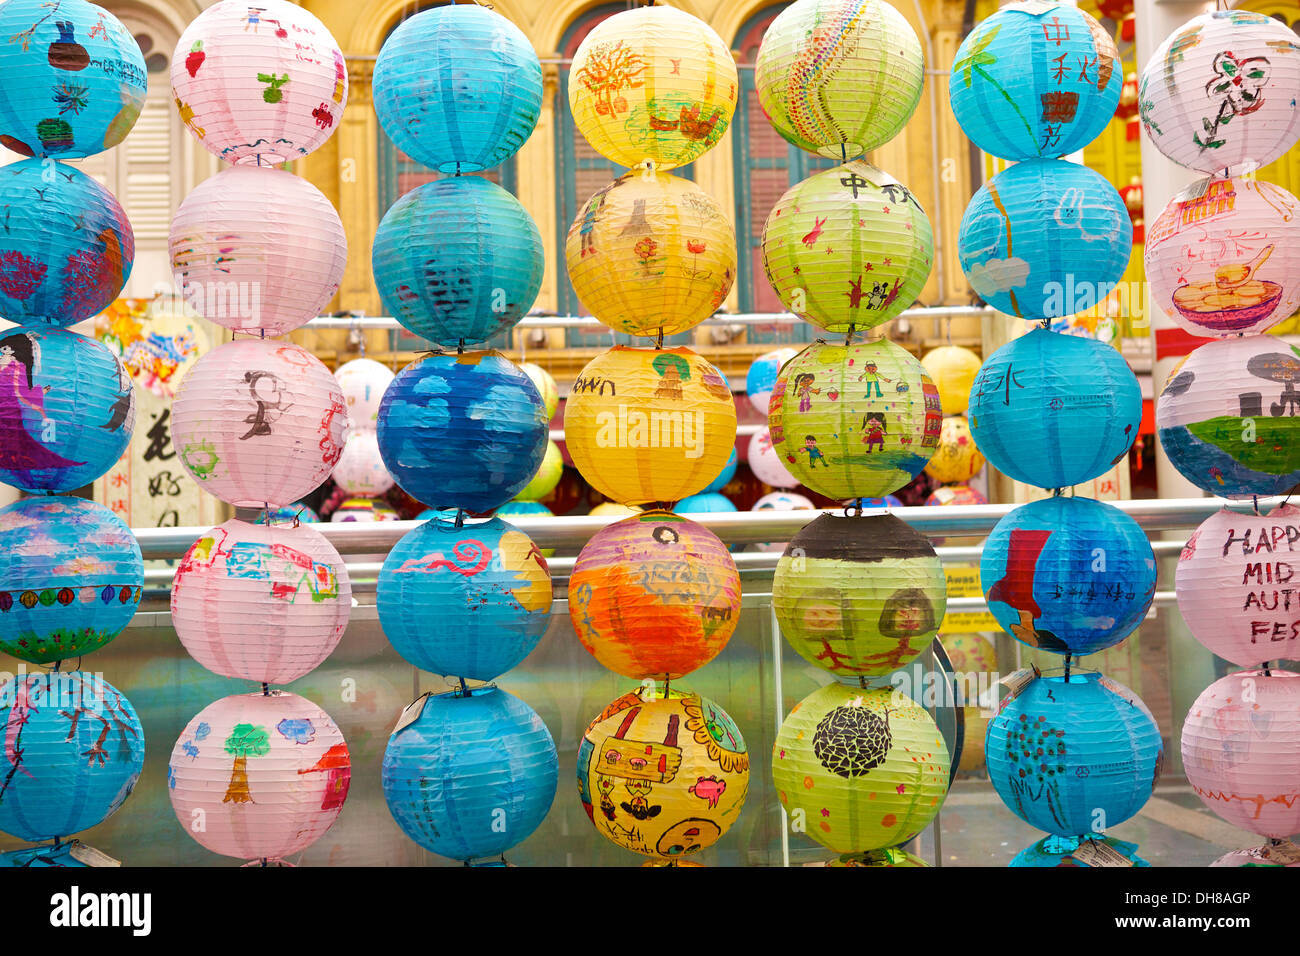 School Exhibition of Mid Autumn Festival Chinese Paper